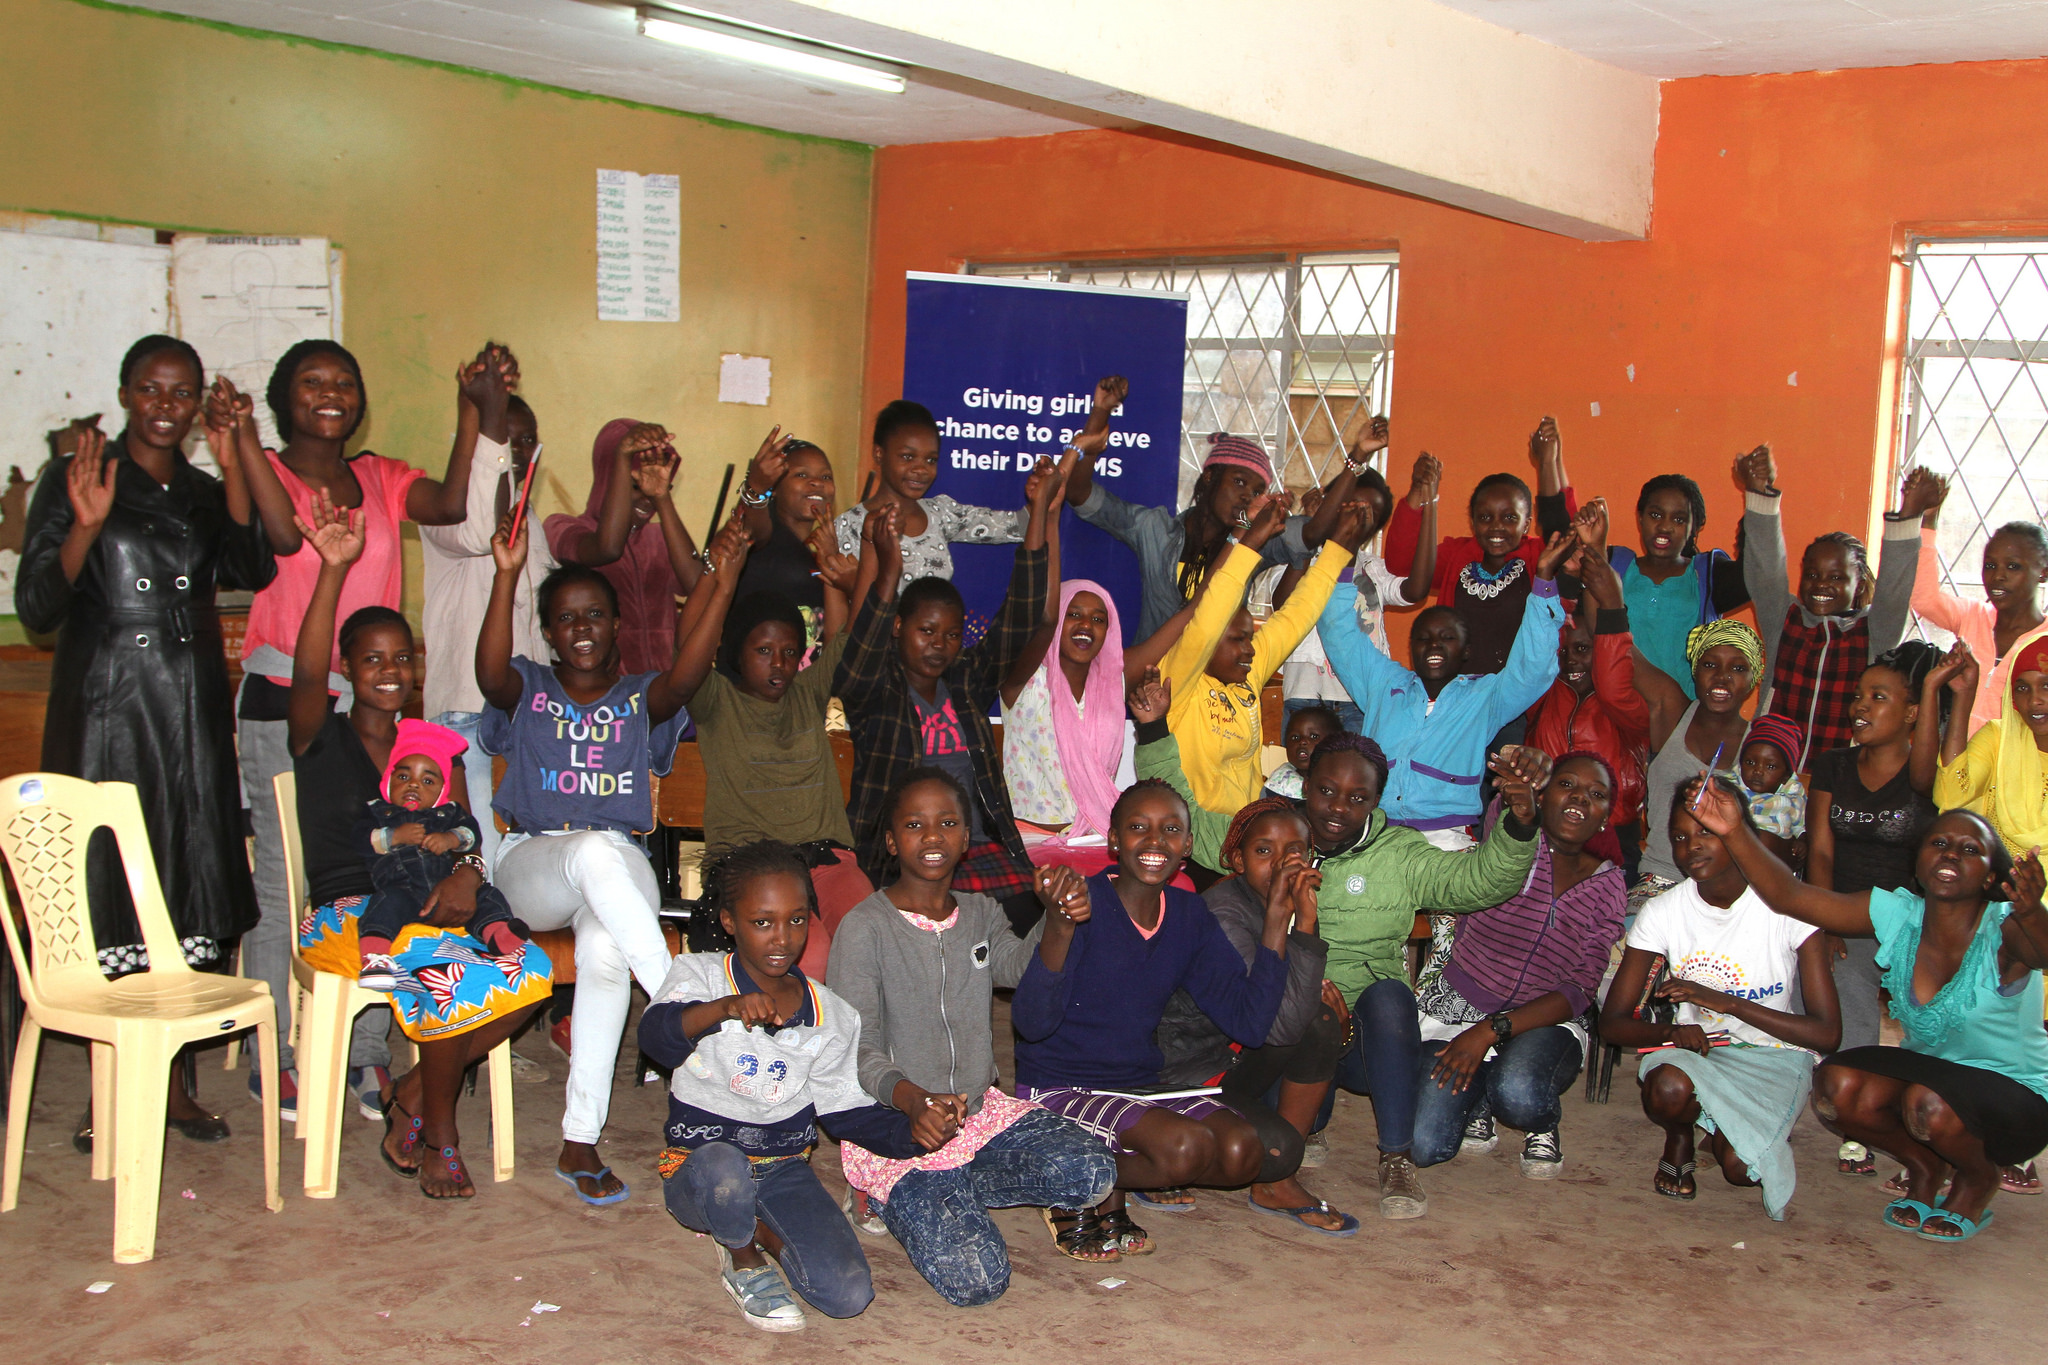 A group of young women supported by the PEPFAR-led DREAMS Partnership in Kenya. (Photo Credit: USAID Kenya)